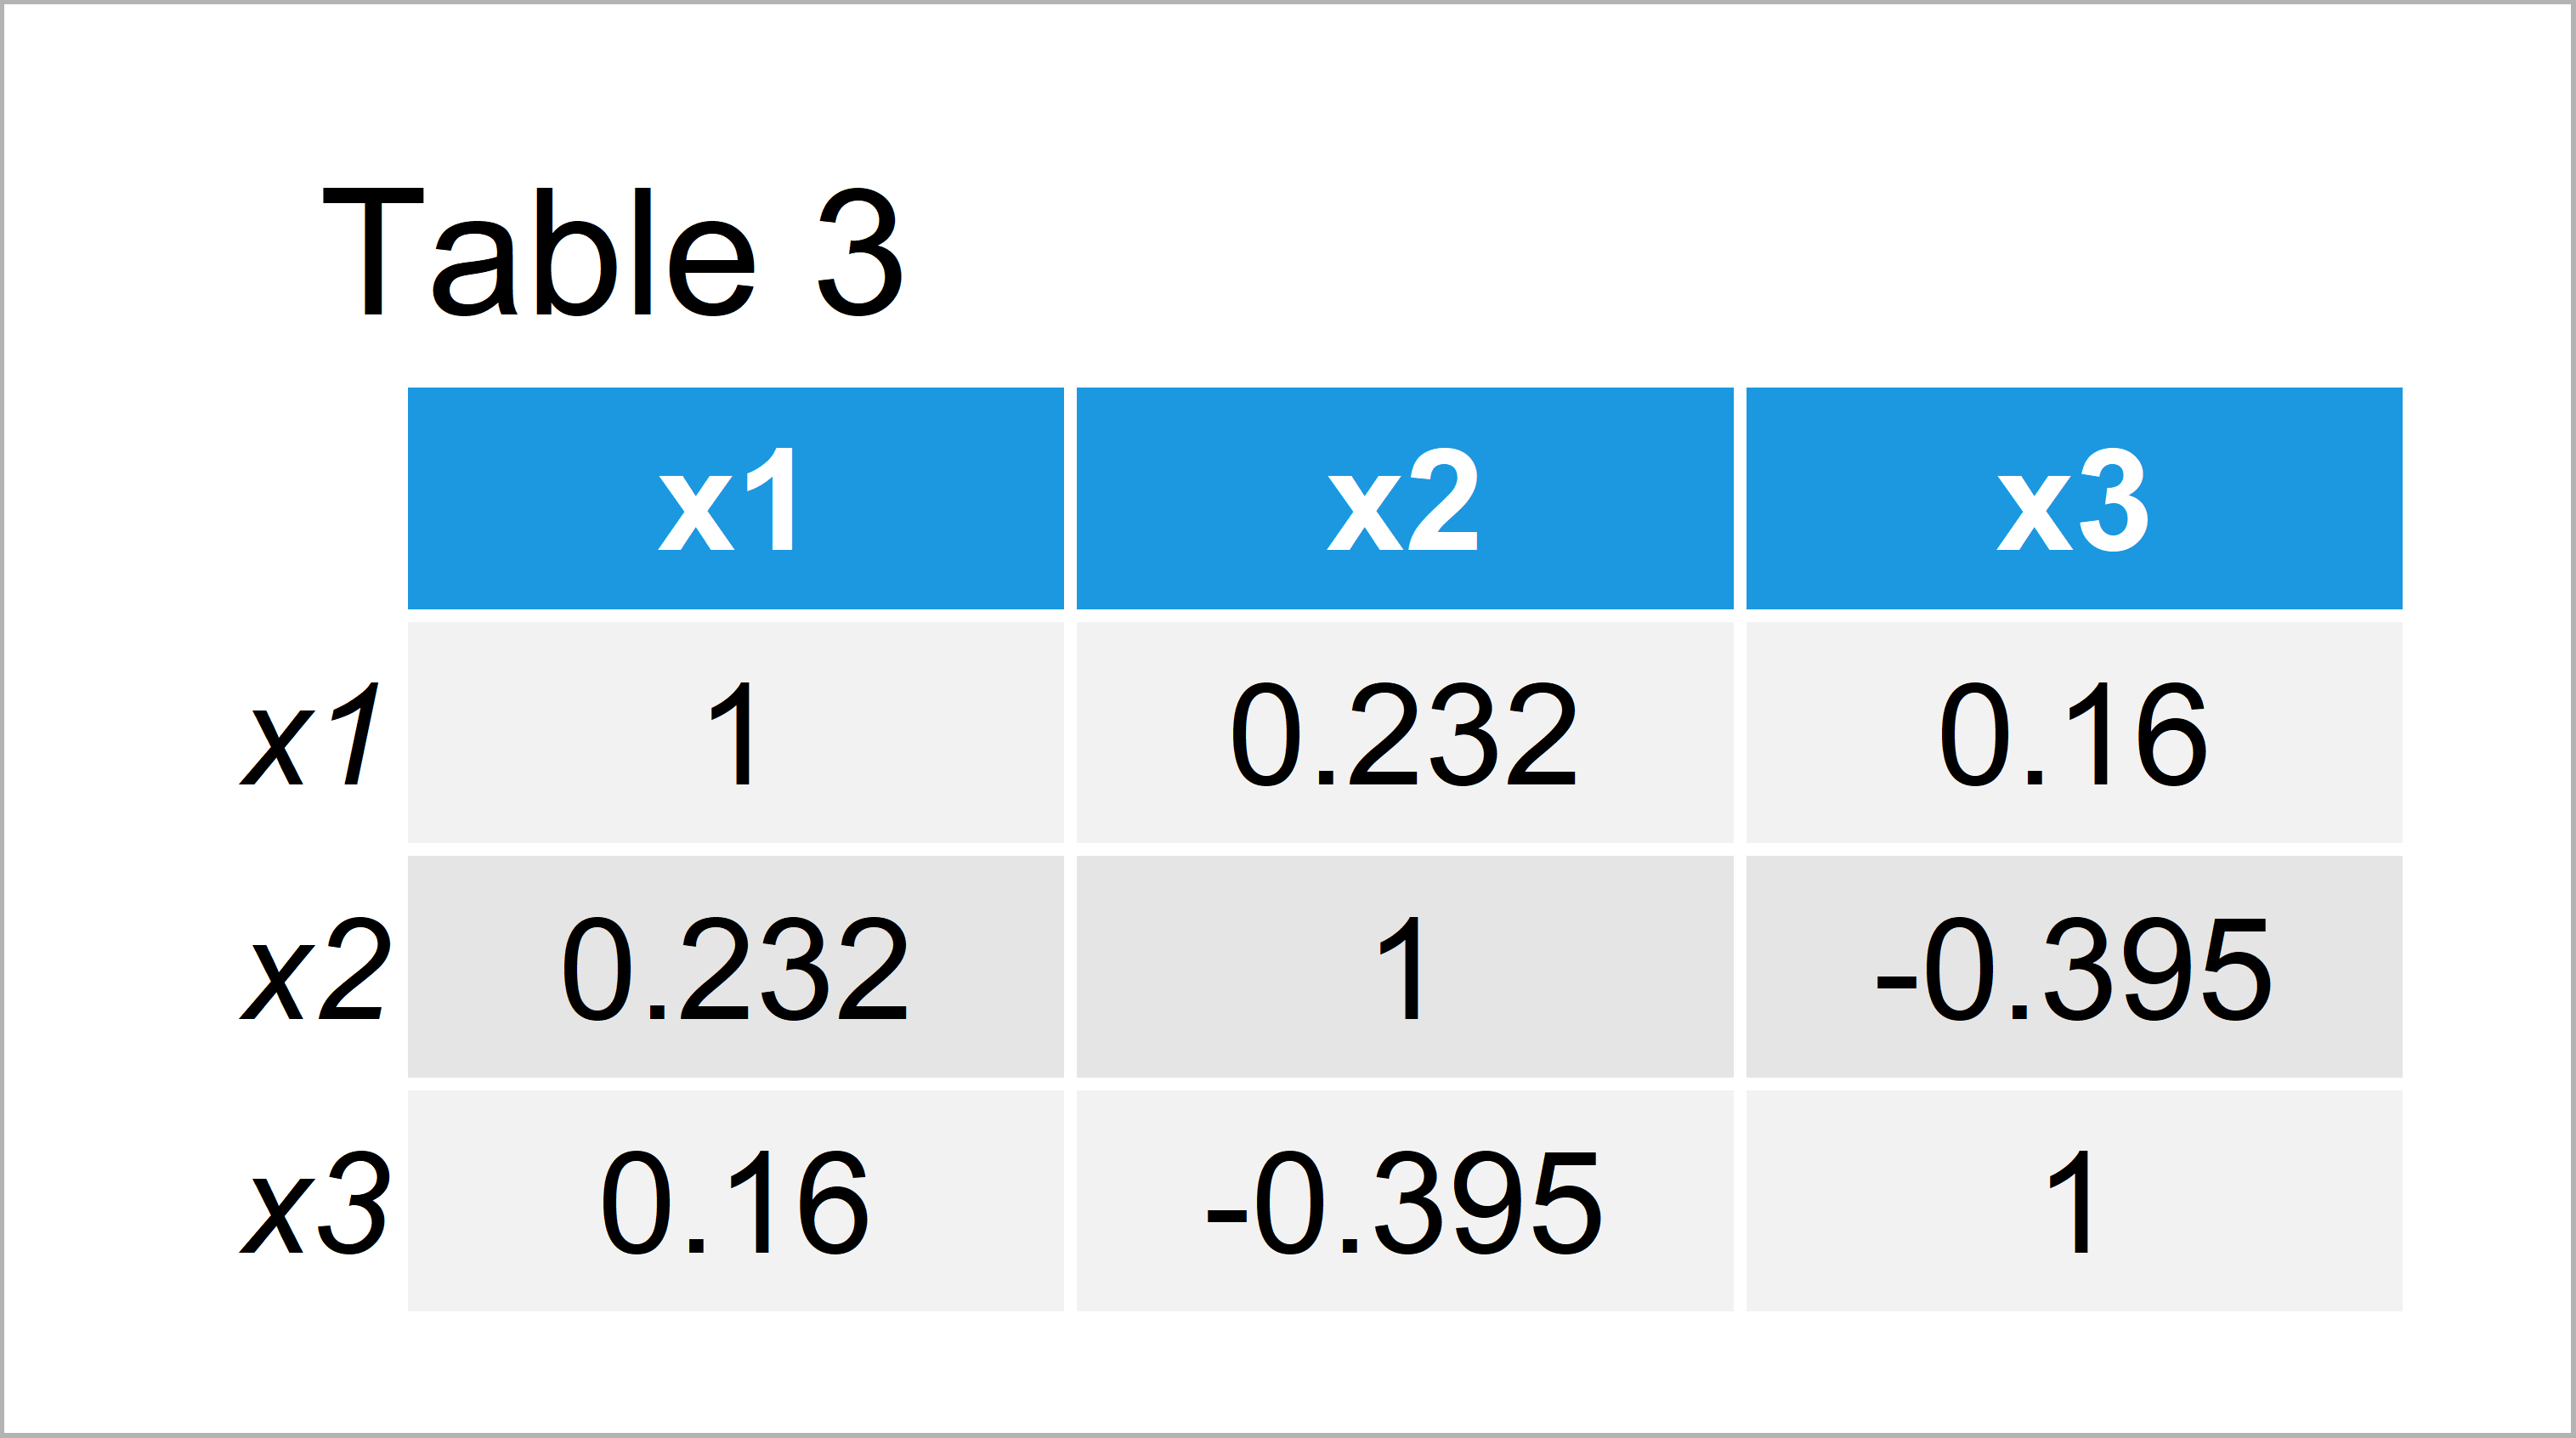 table 3 matrix cor function shows only na and one r